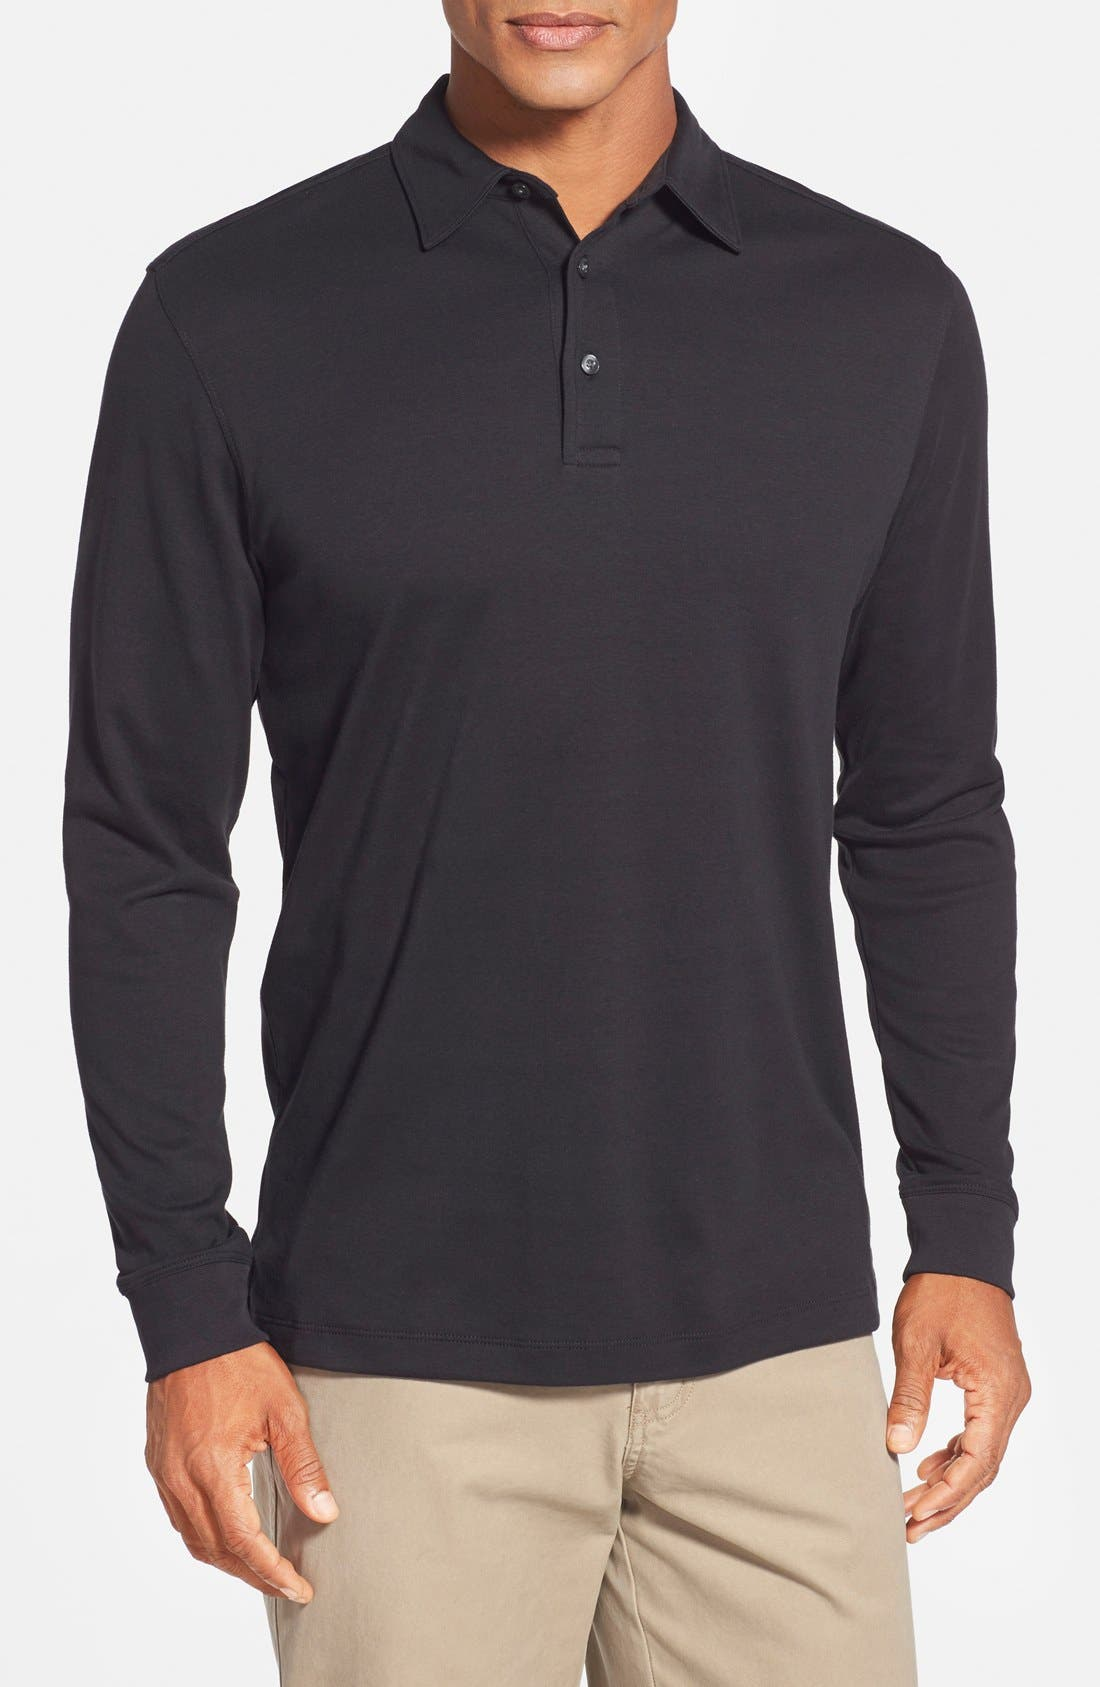 CUTTER & BUCK 'Belfair' Pima Cotton Polo